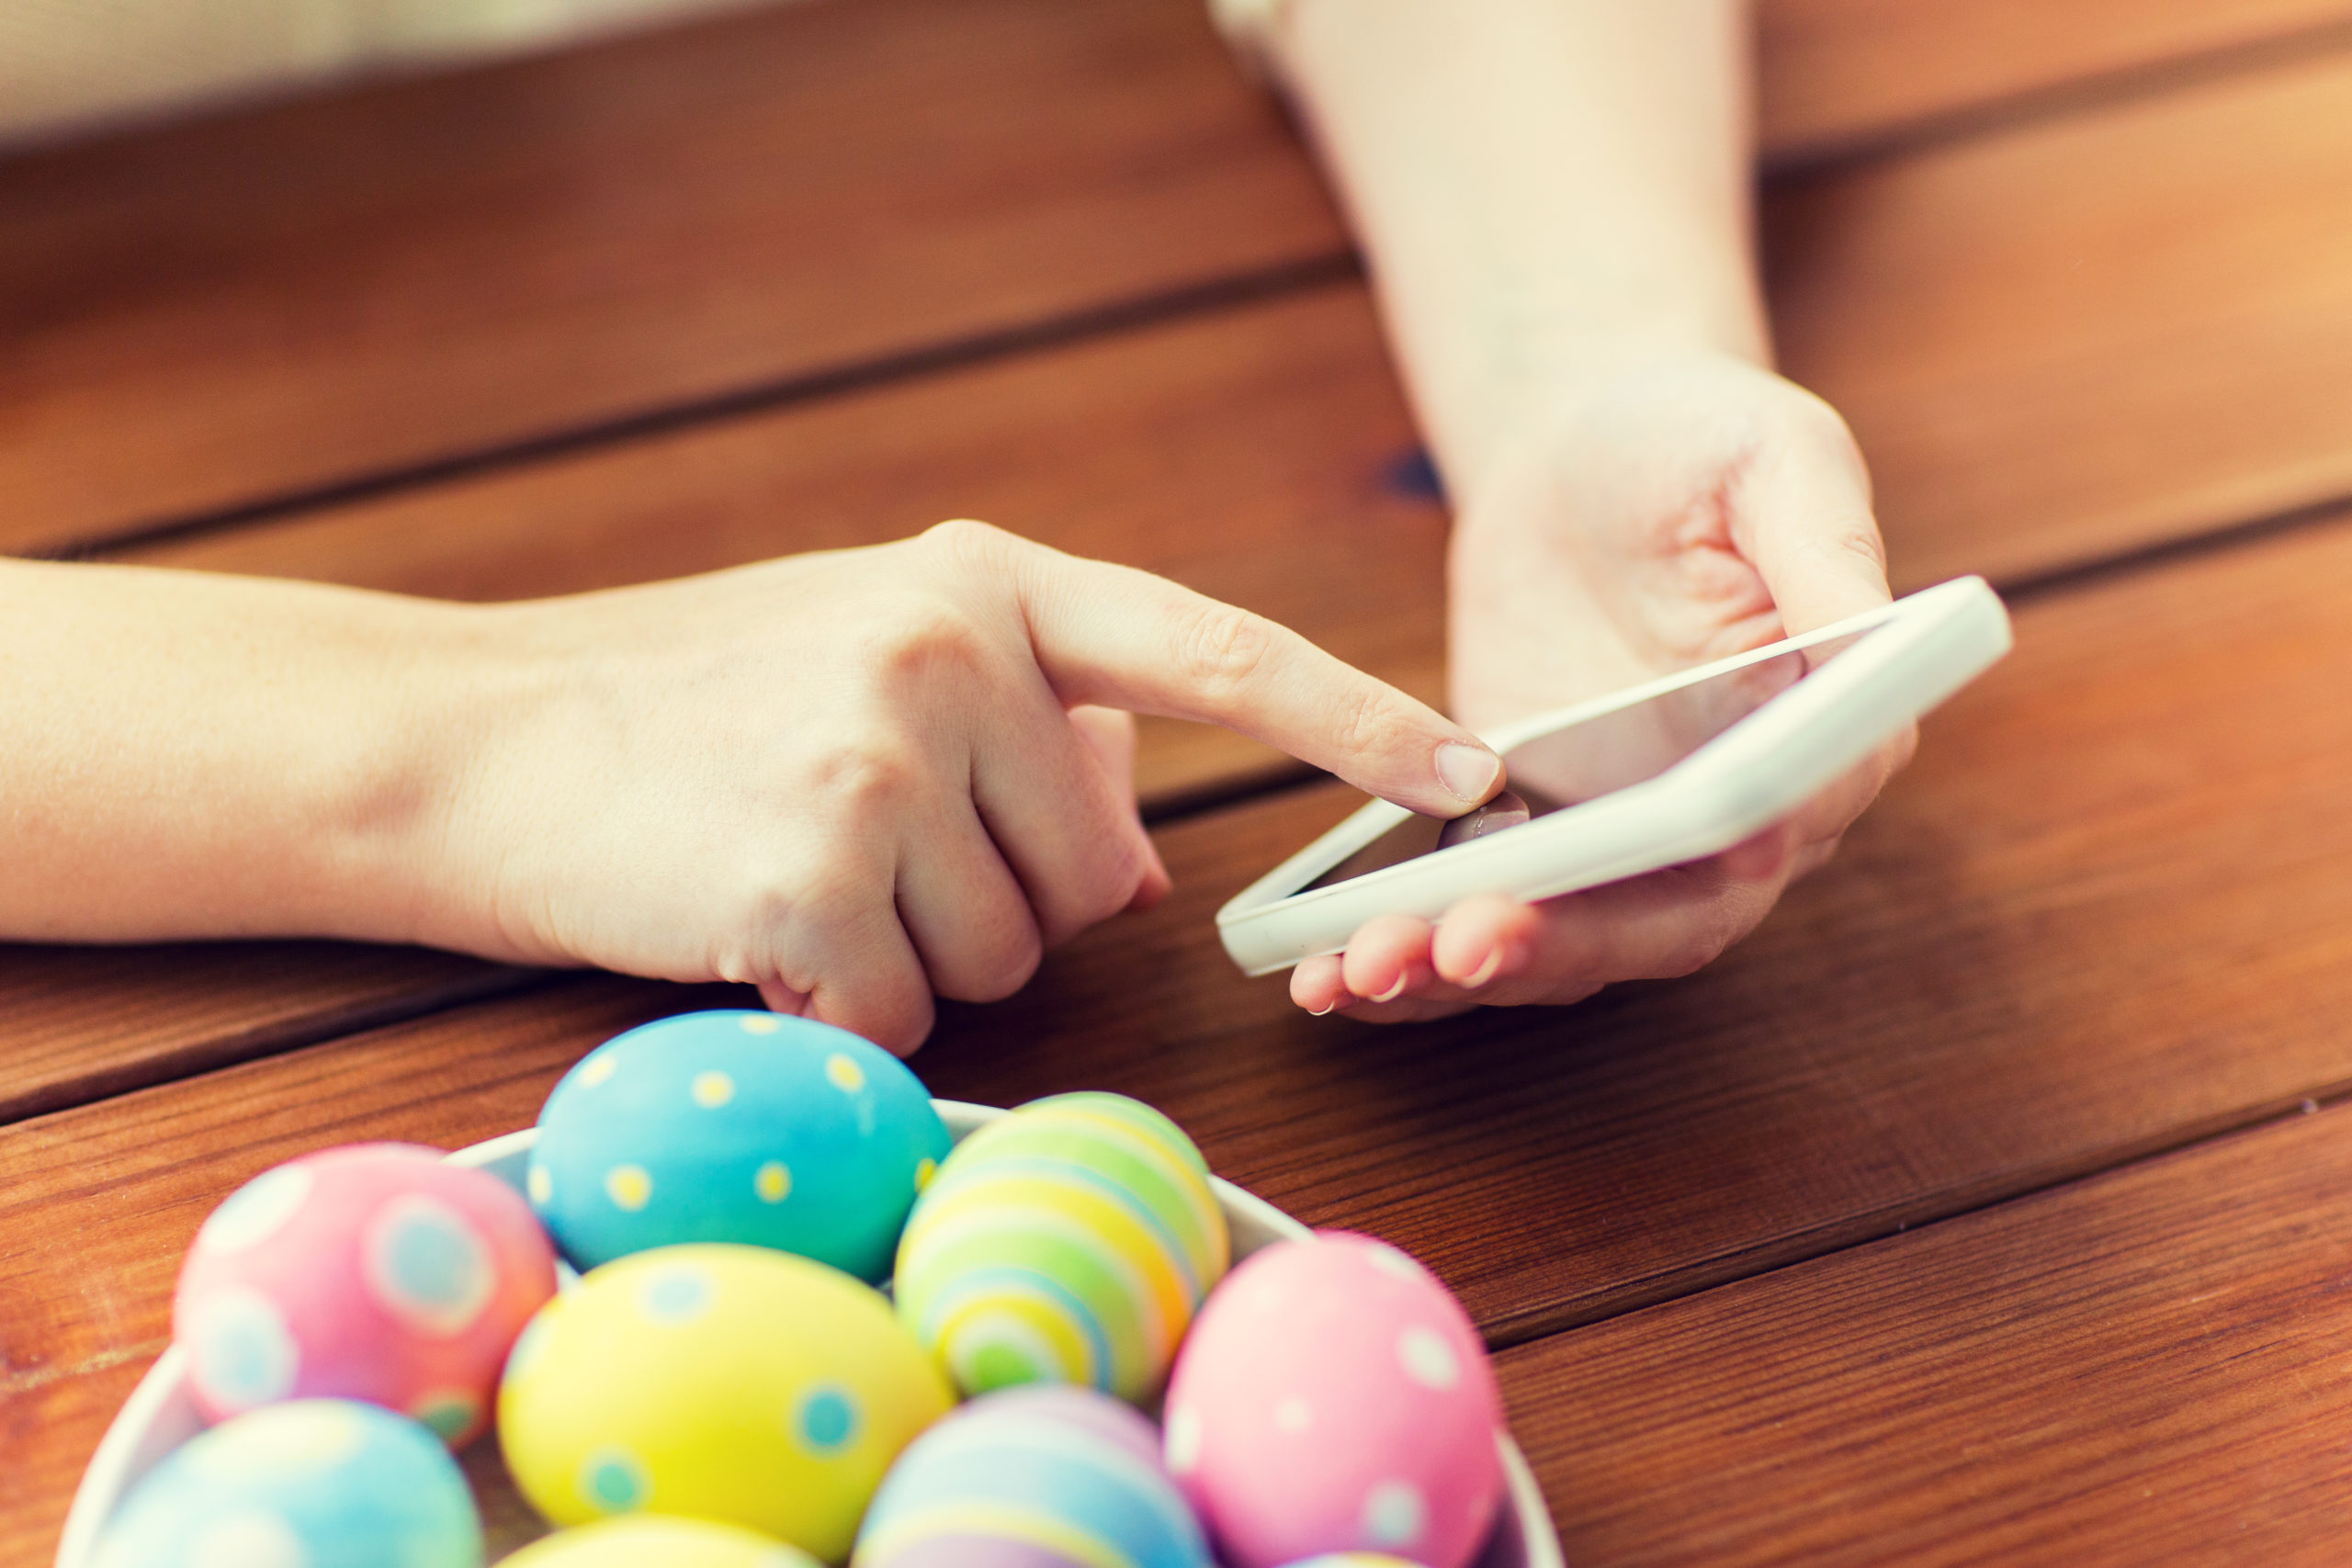 https://elements.envato.com/close-up-of-hands-with-easter-eggs-and-smartphone-PKU87UJ